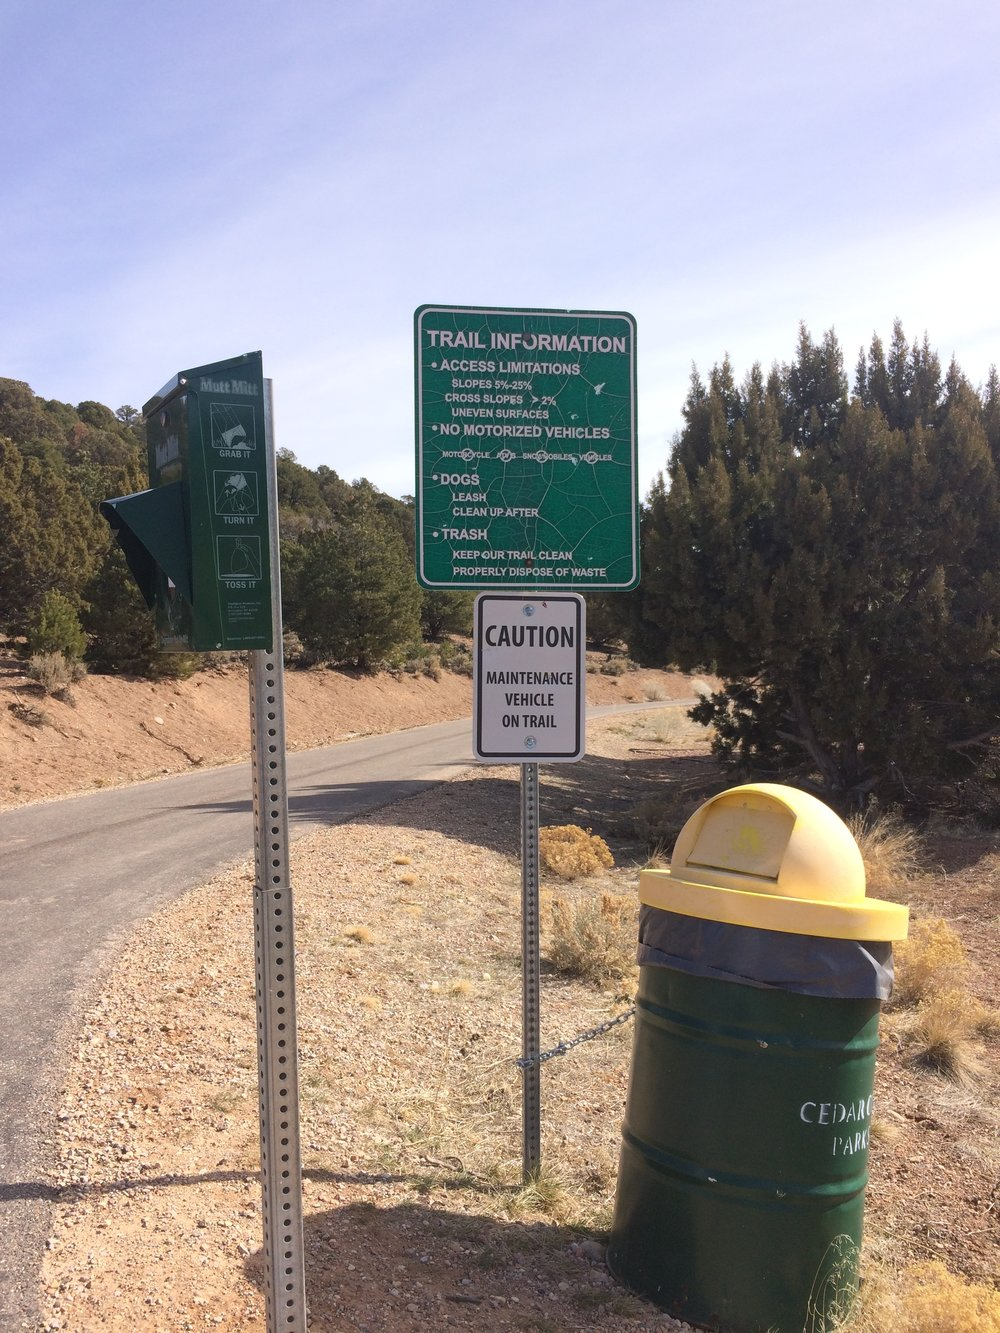 West Trail Head waste bag station